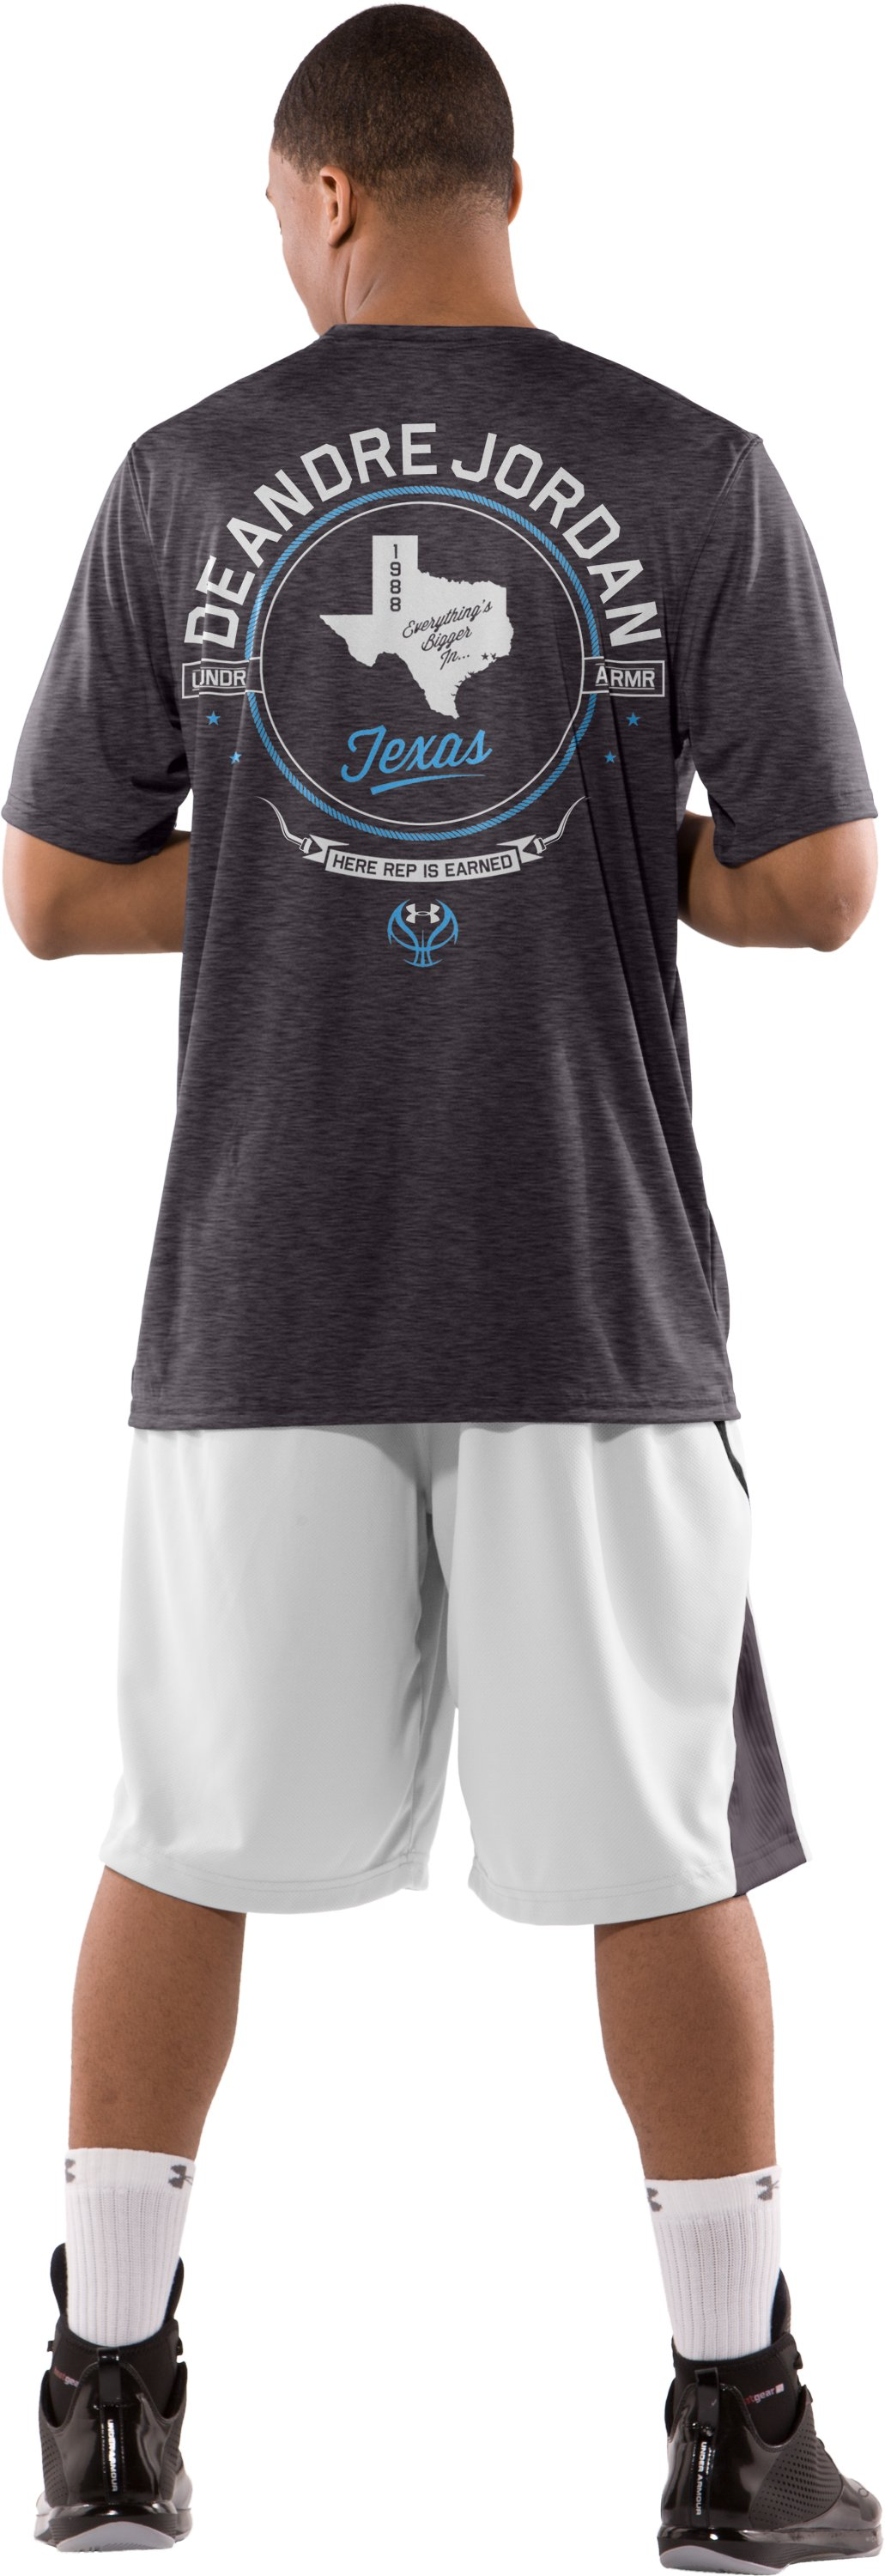 Men's DeAndre Jordan Player Reppin' T-Shirt, Carbon Heather, Back